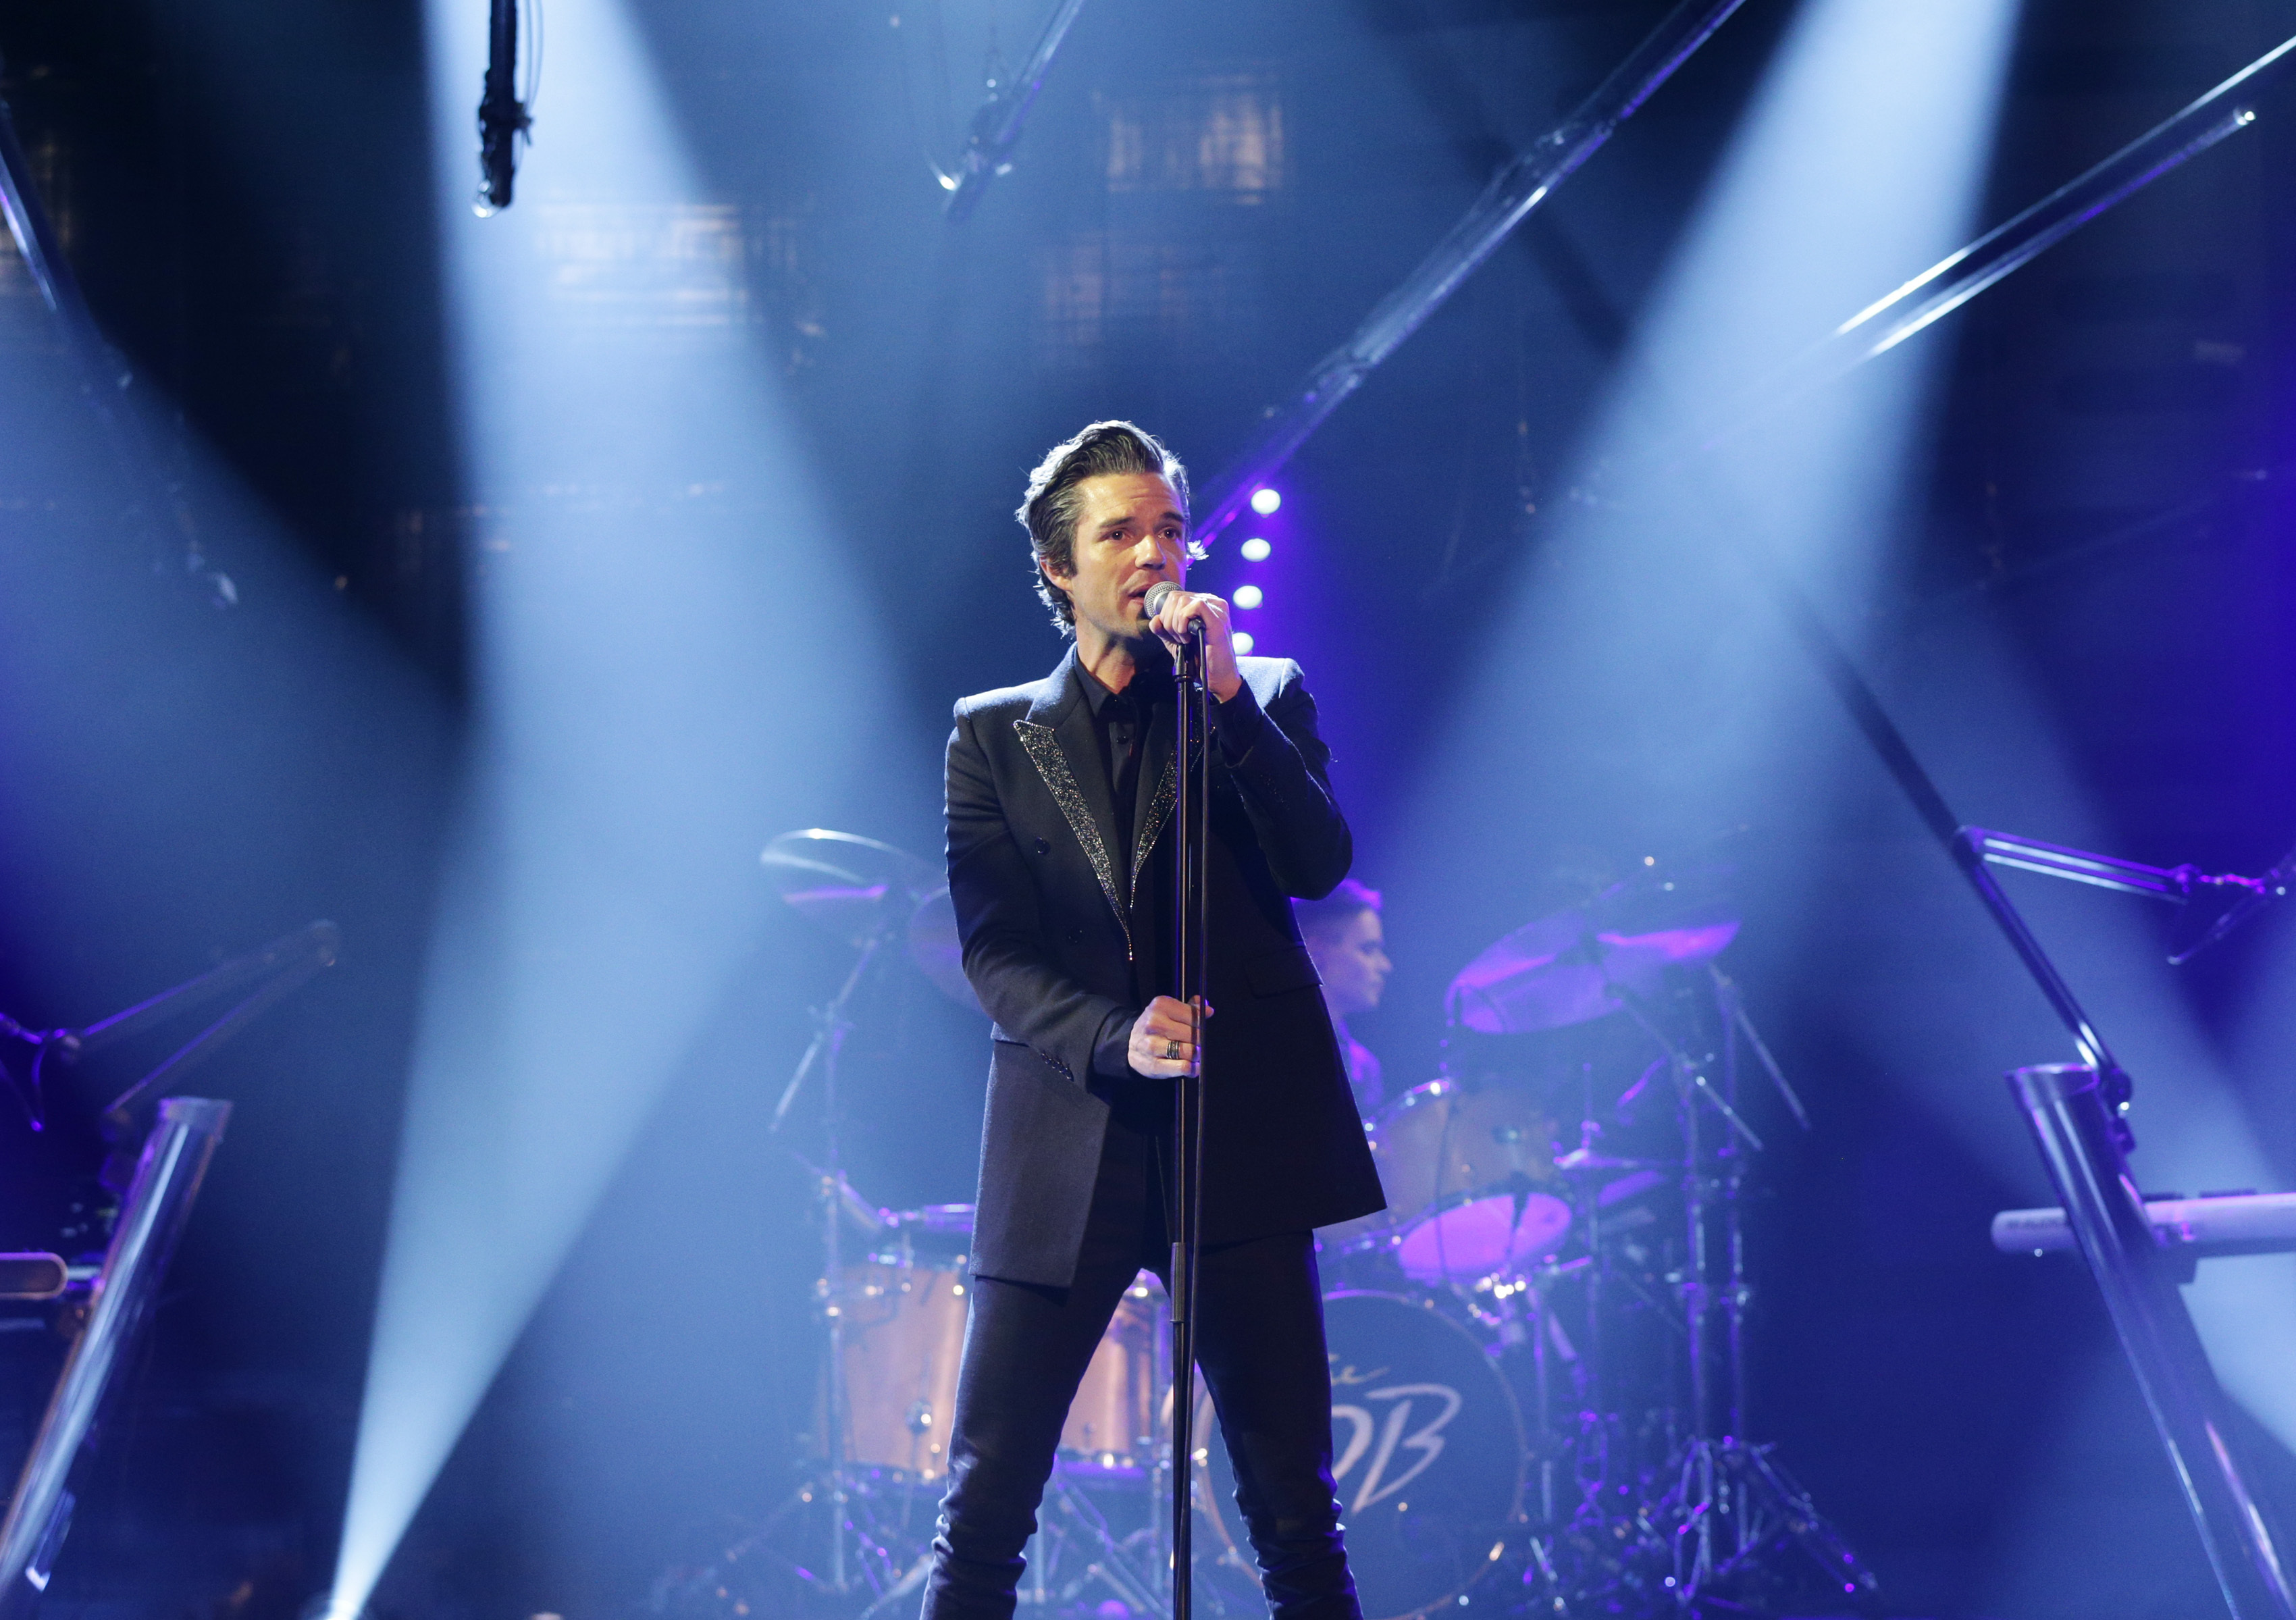 Brandon Flowers performing during filming of the Graham Norton Show